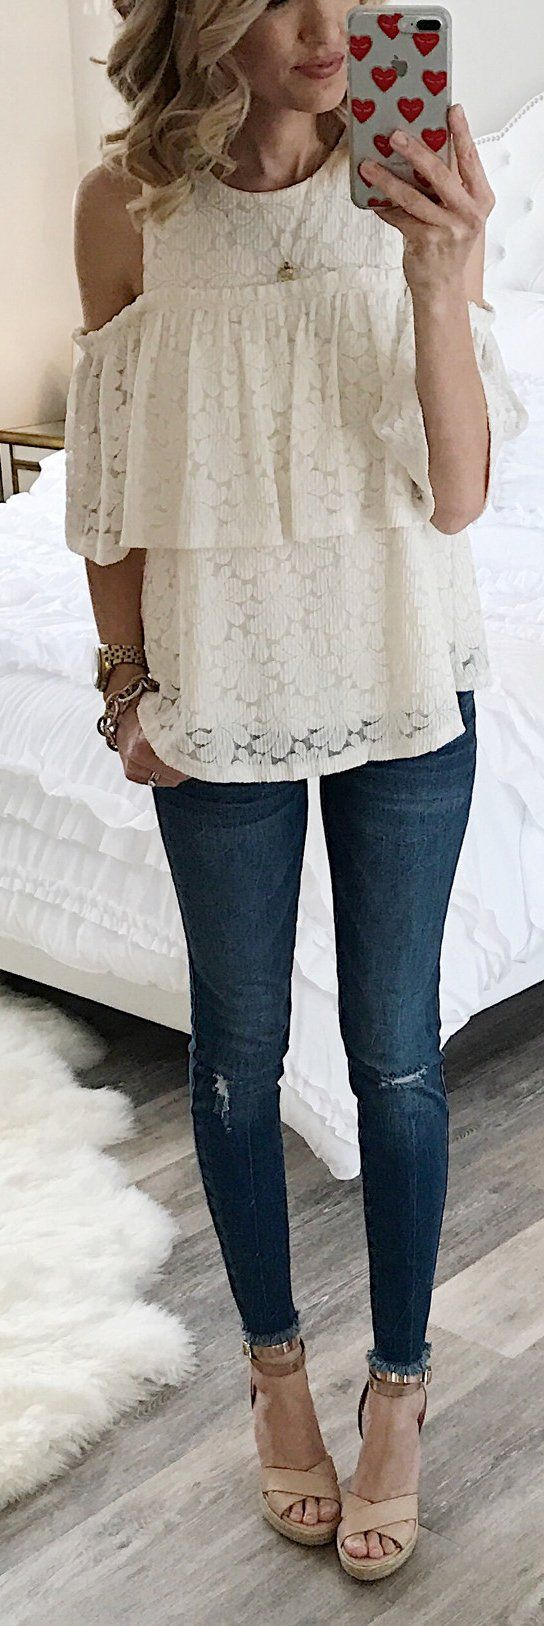 White Open Shoulder Lace Top / Ripped Skinny Jeans / Beige Sandals